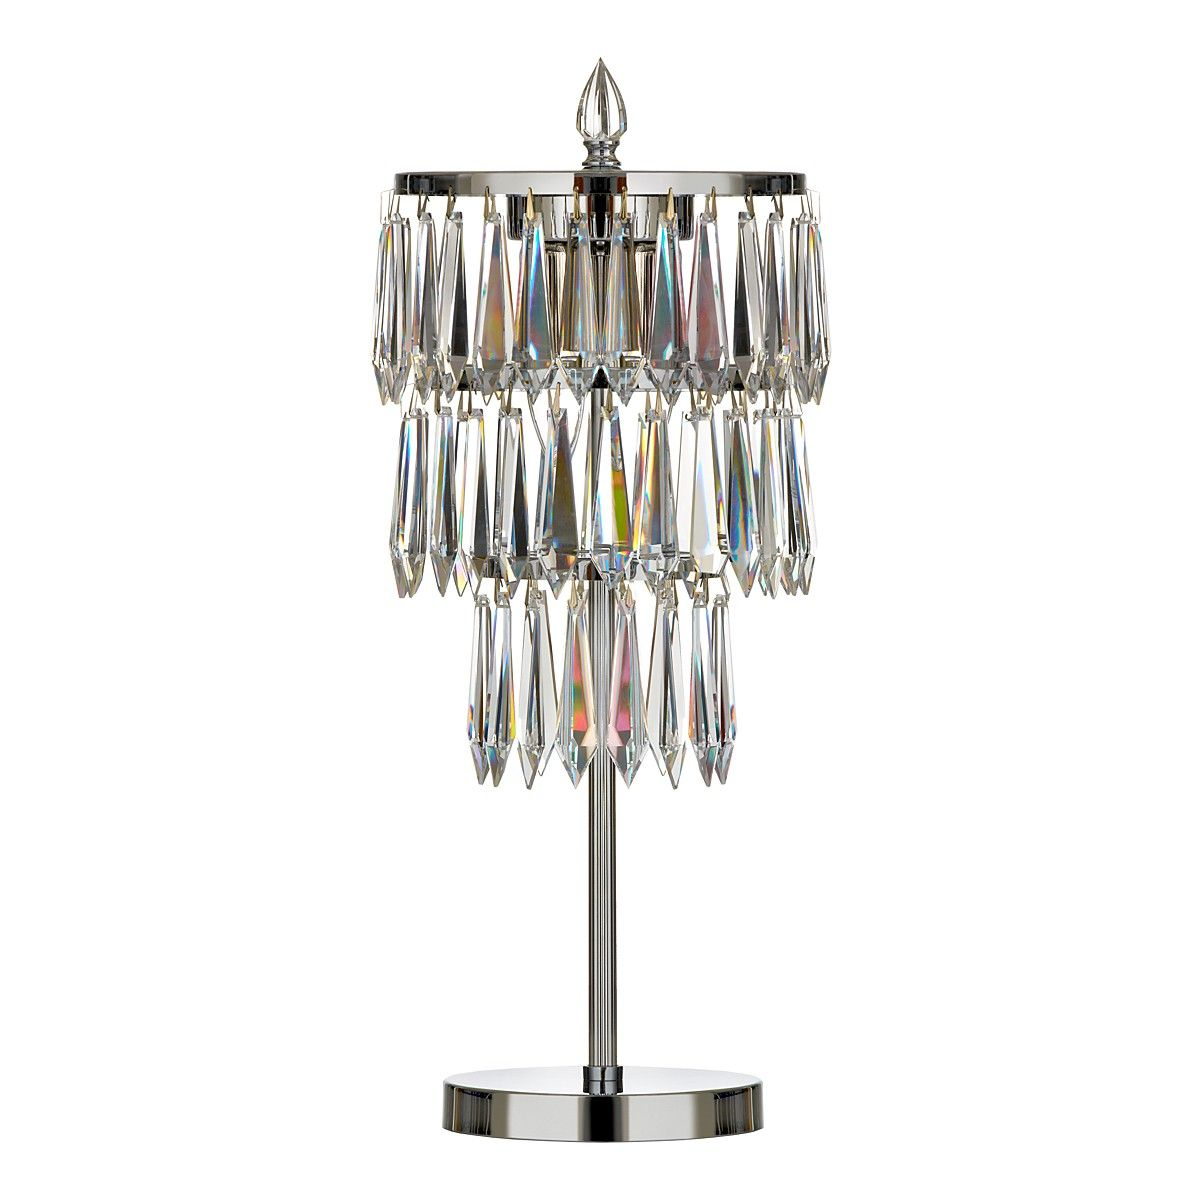 Waterford etoile nouveau table lamp bloomingdales home stuff explore waterford lamp waterford crystal and more arubaitofo Gallery